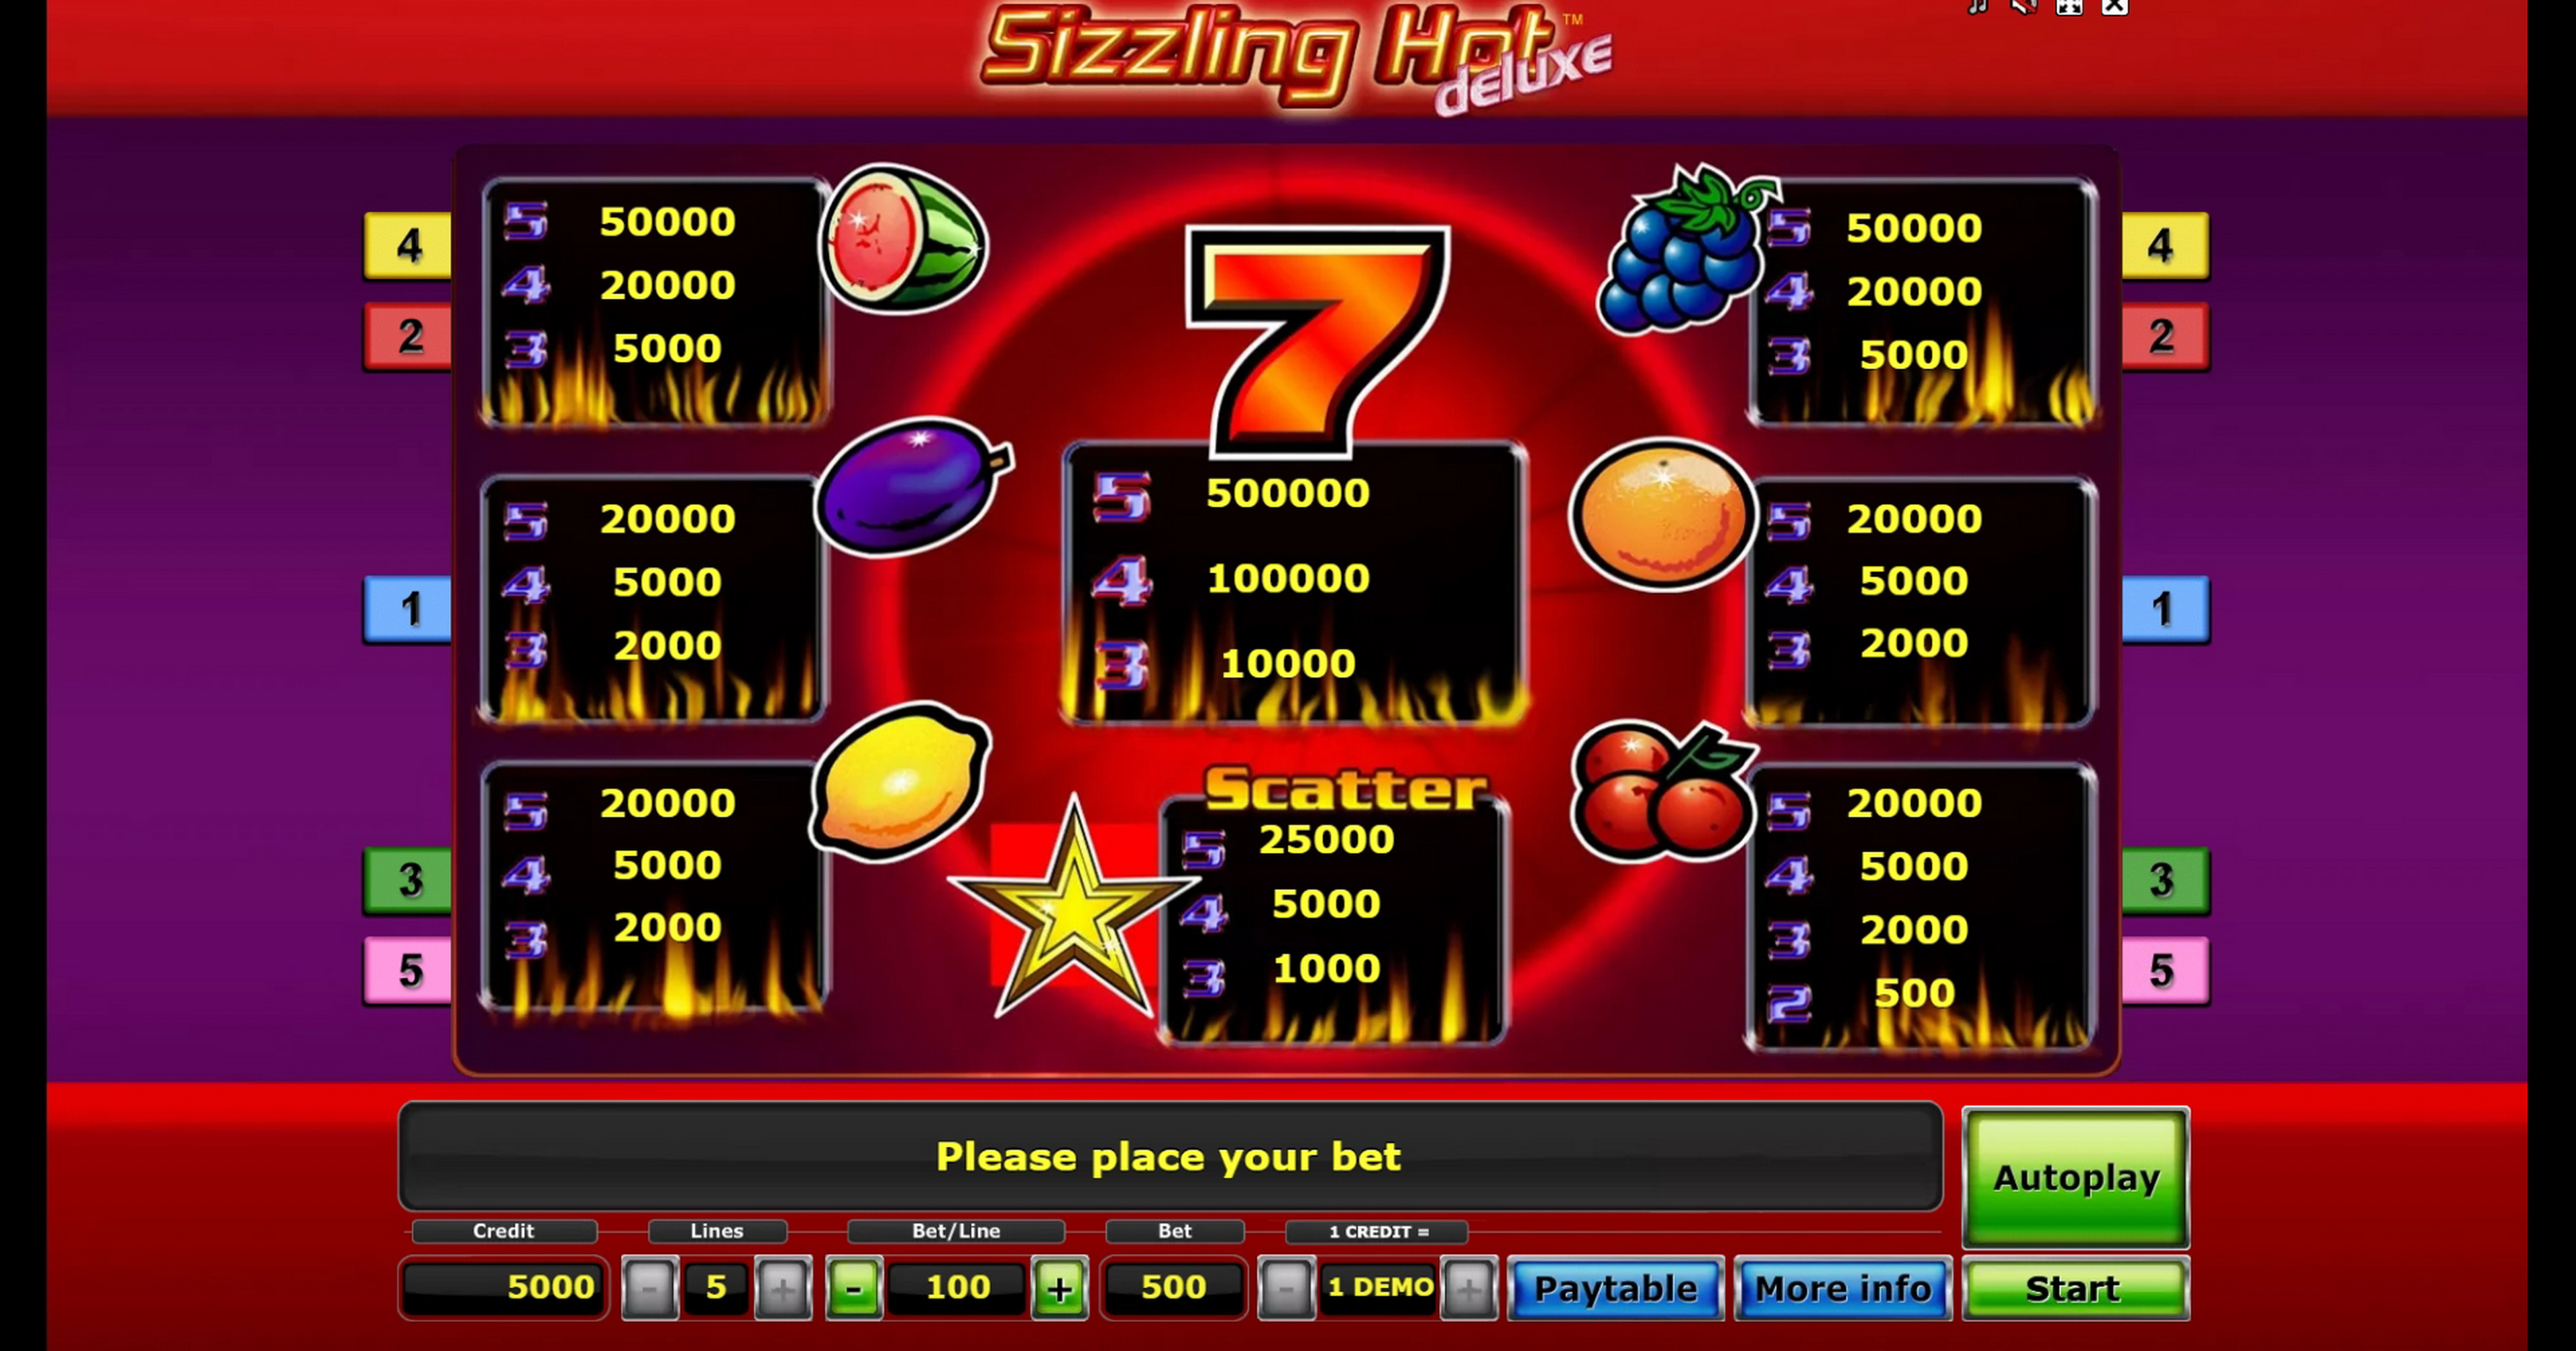 Info of Sizzling Hot deluxe Slot Game by Greentube